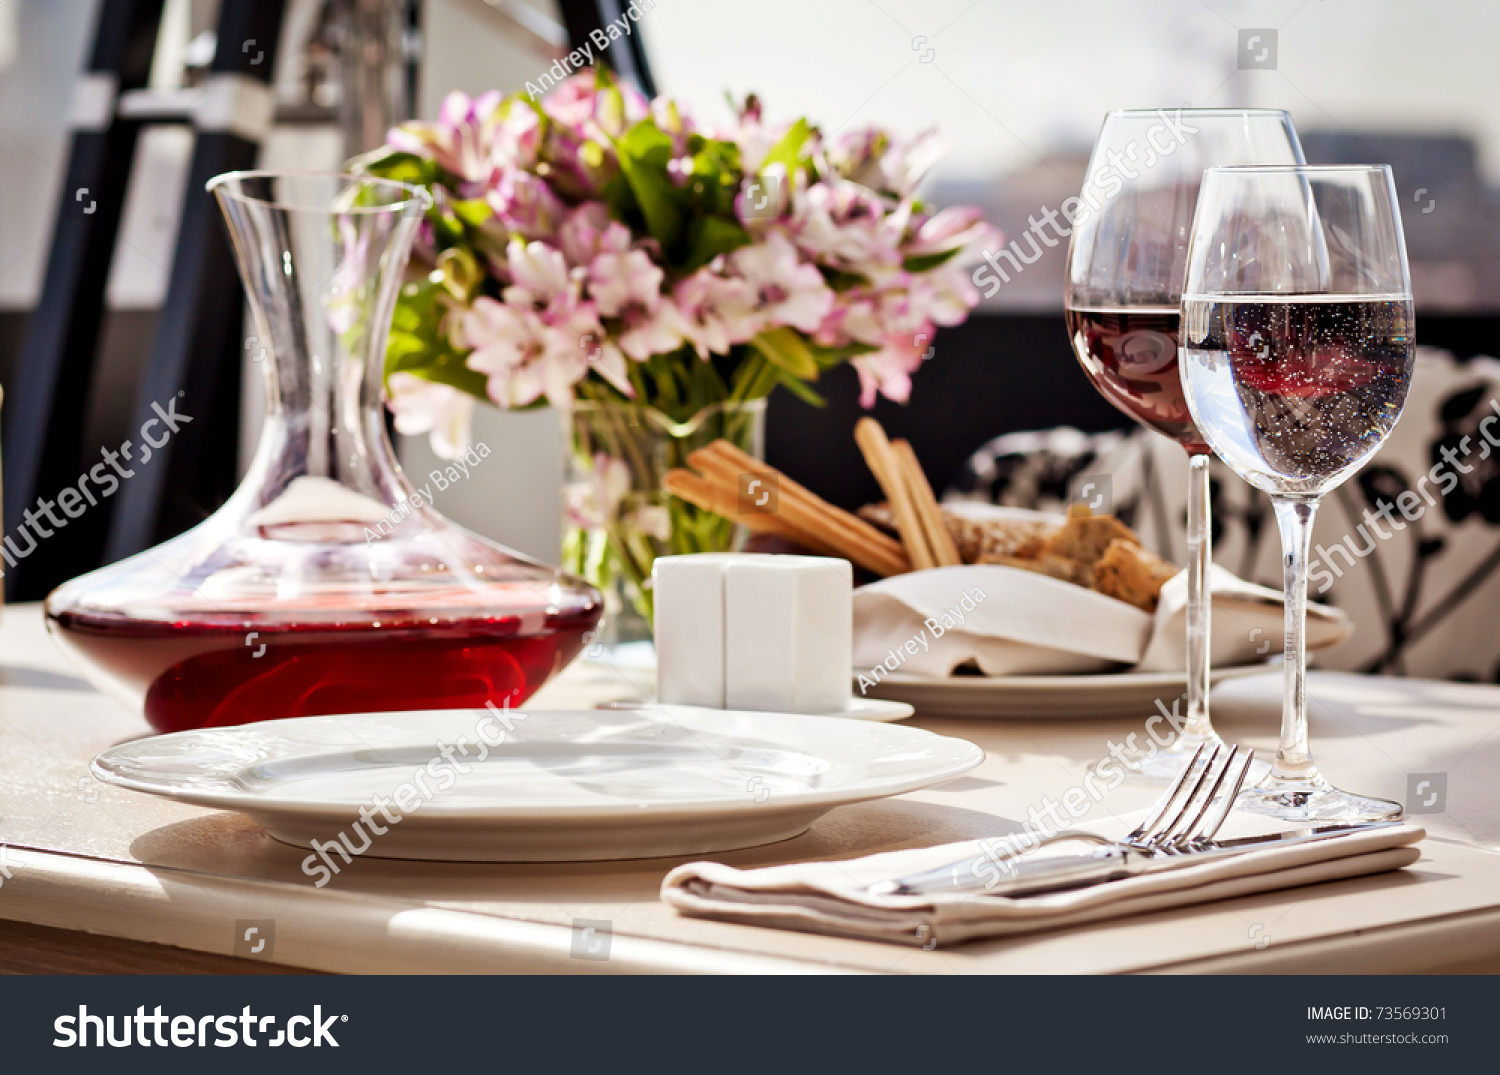 Fine restaurant dinner table place setting stock photo for Fancy dinner table